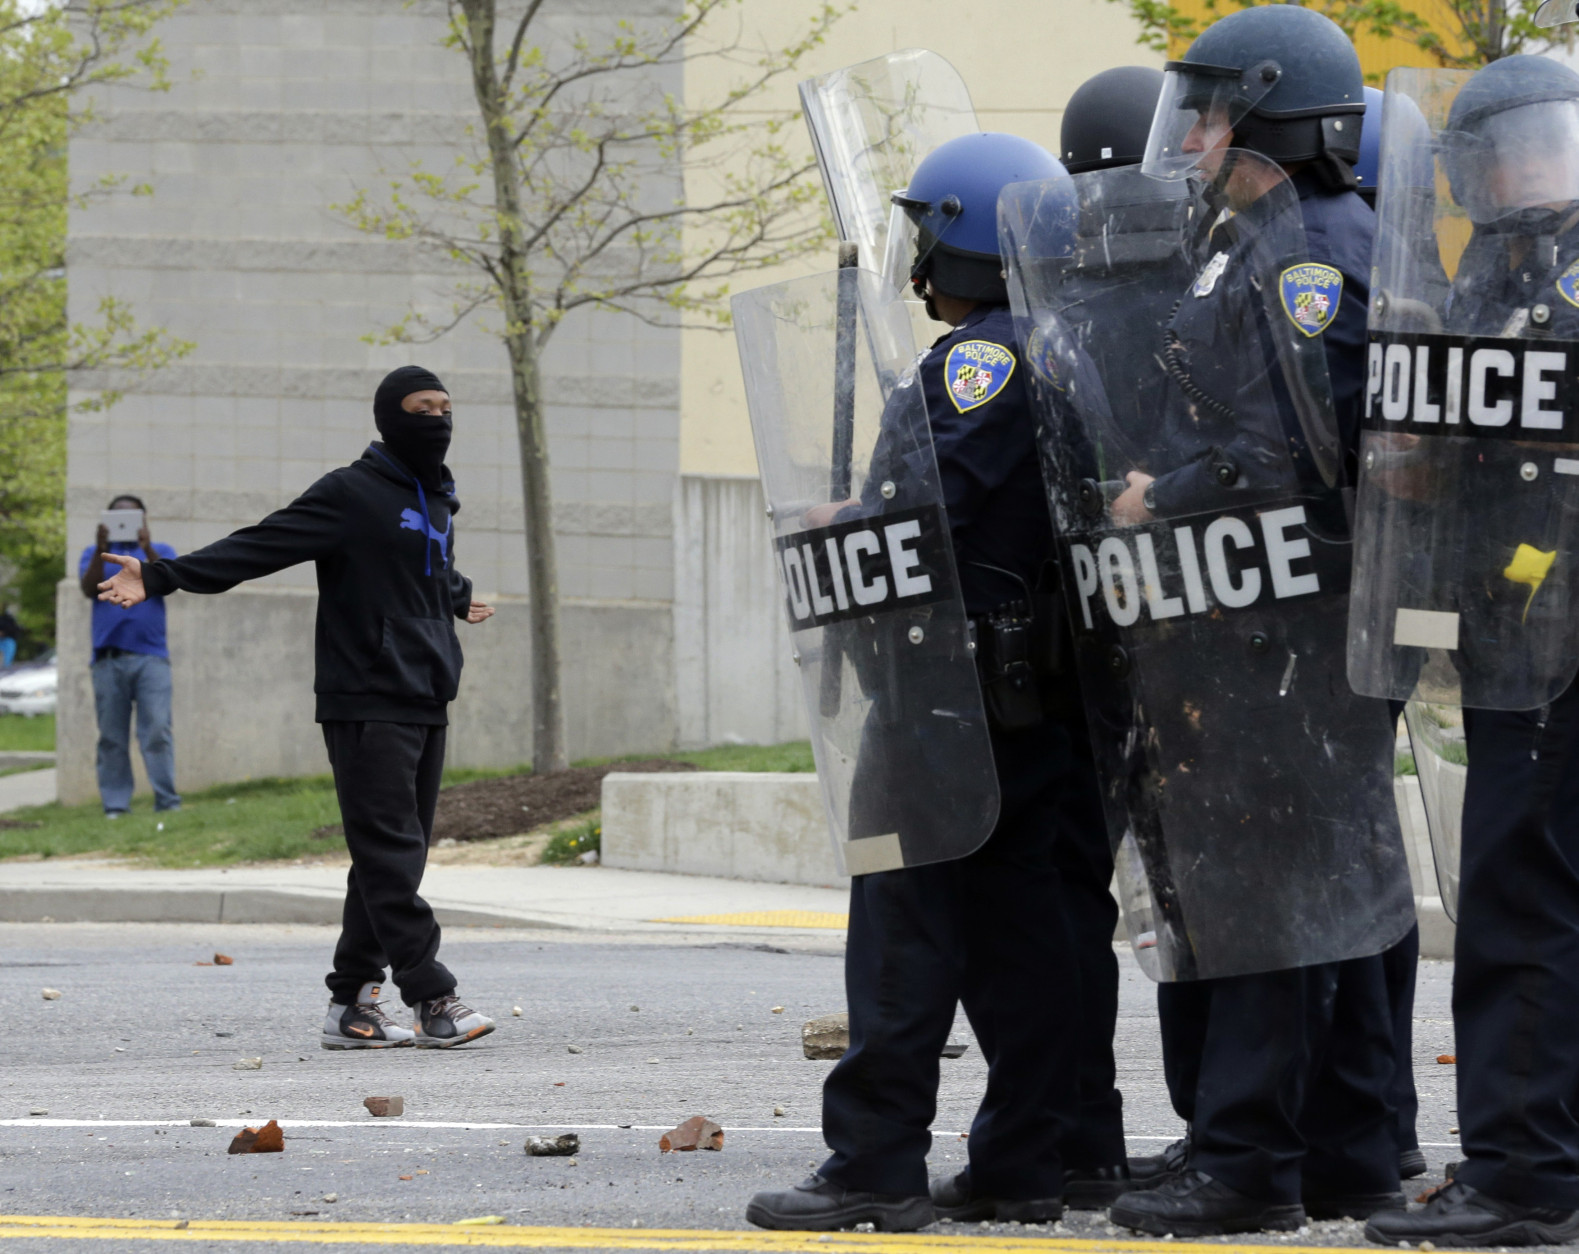 A demonstrator taunts police as they respond to thrown objects, Monday, April 27, 2015, after the funeral of Freddie Gray in Baltimore. Gray died from spinal injuries about a week after he was arrested and transported in a Baltimore Police Department van. (AP Photo/Patrick Semansky)